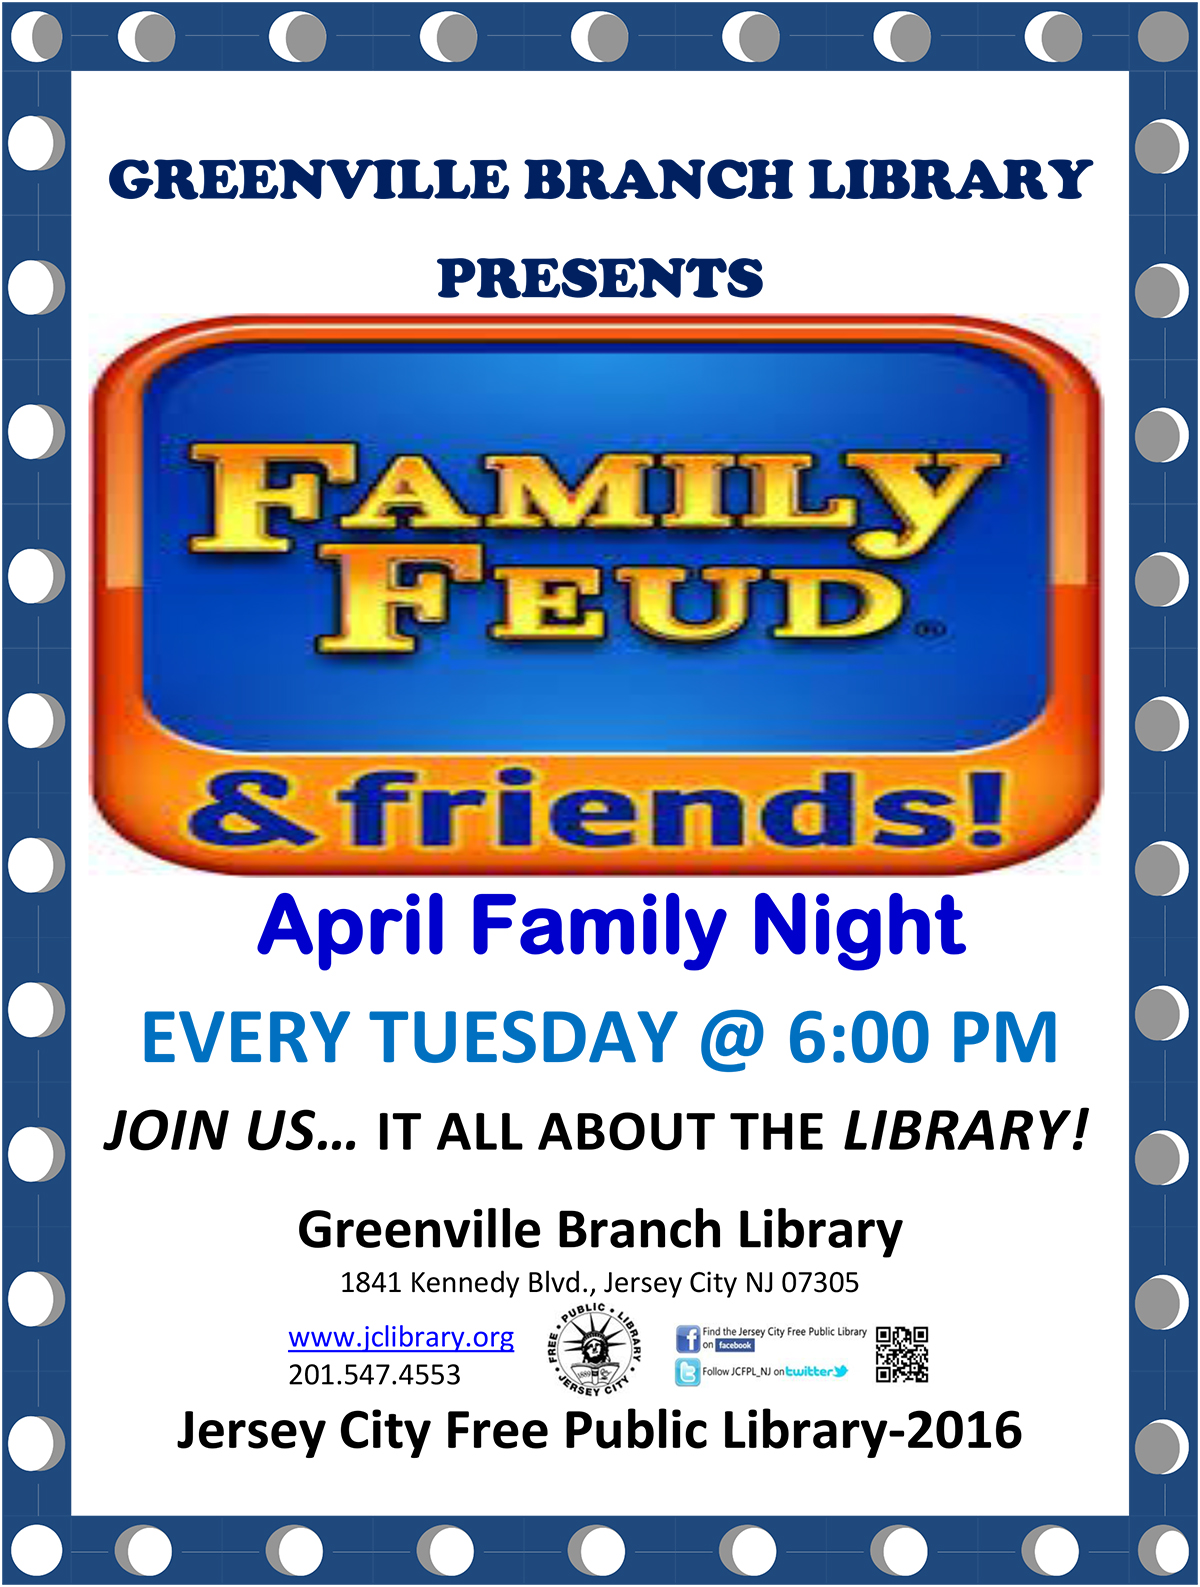 Greenville Branch Library Family Feud Friends